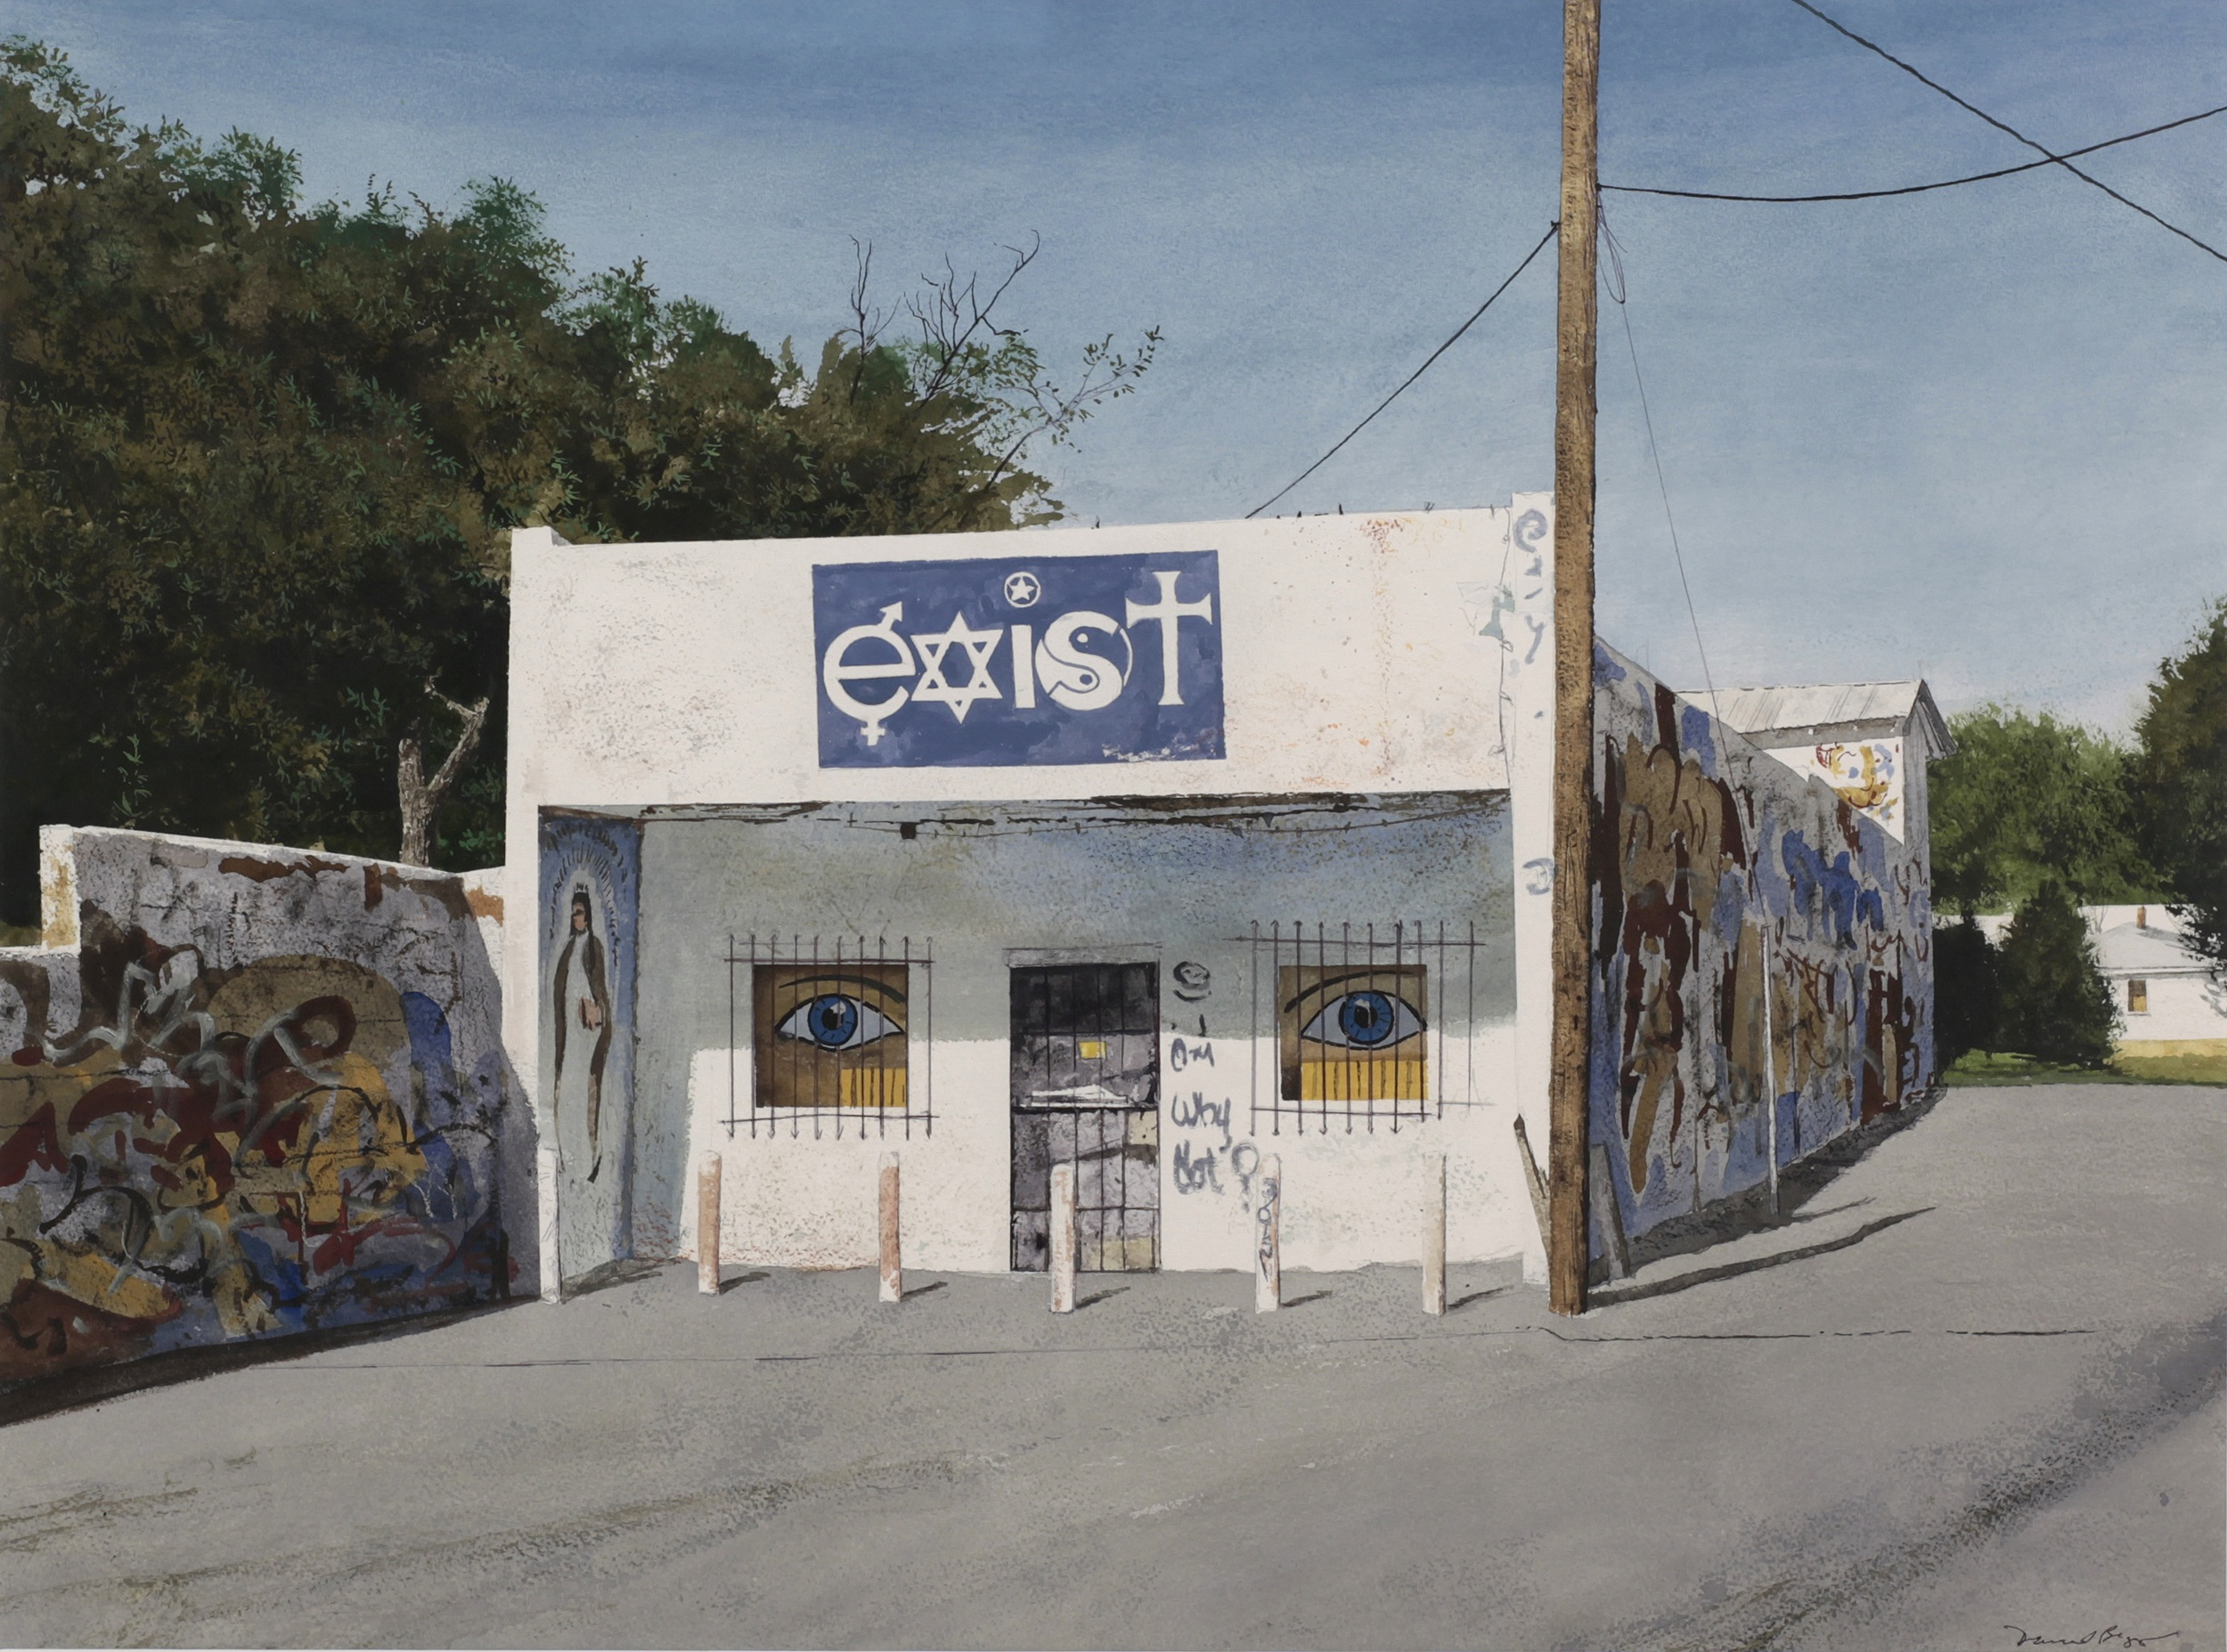 "Daniel Blagg, House of the Existentialist, 2012, watercolor on paper, 27 1/2 x 35"". Private Collection, Fort Worth, TX."